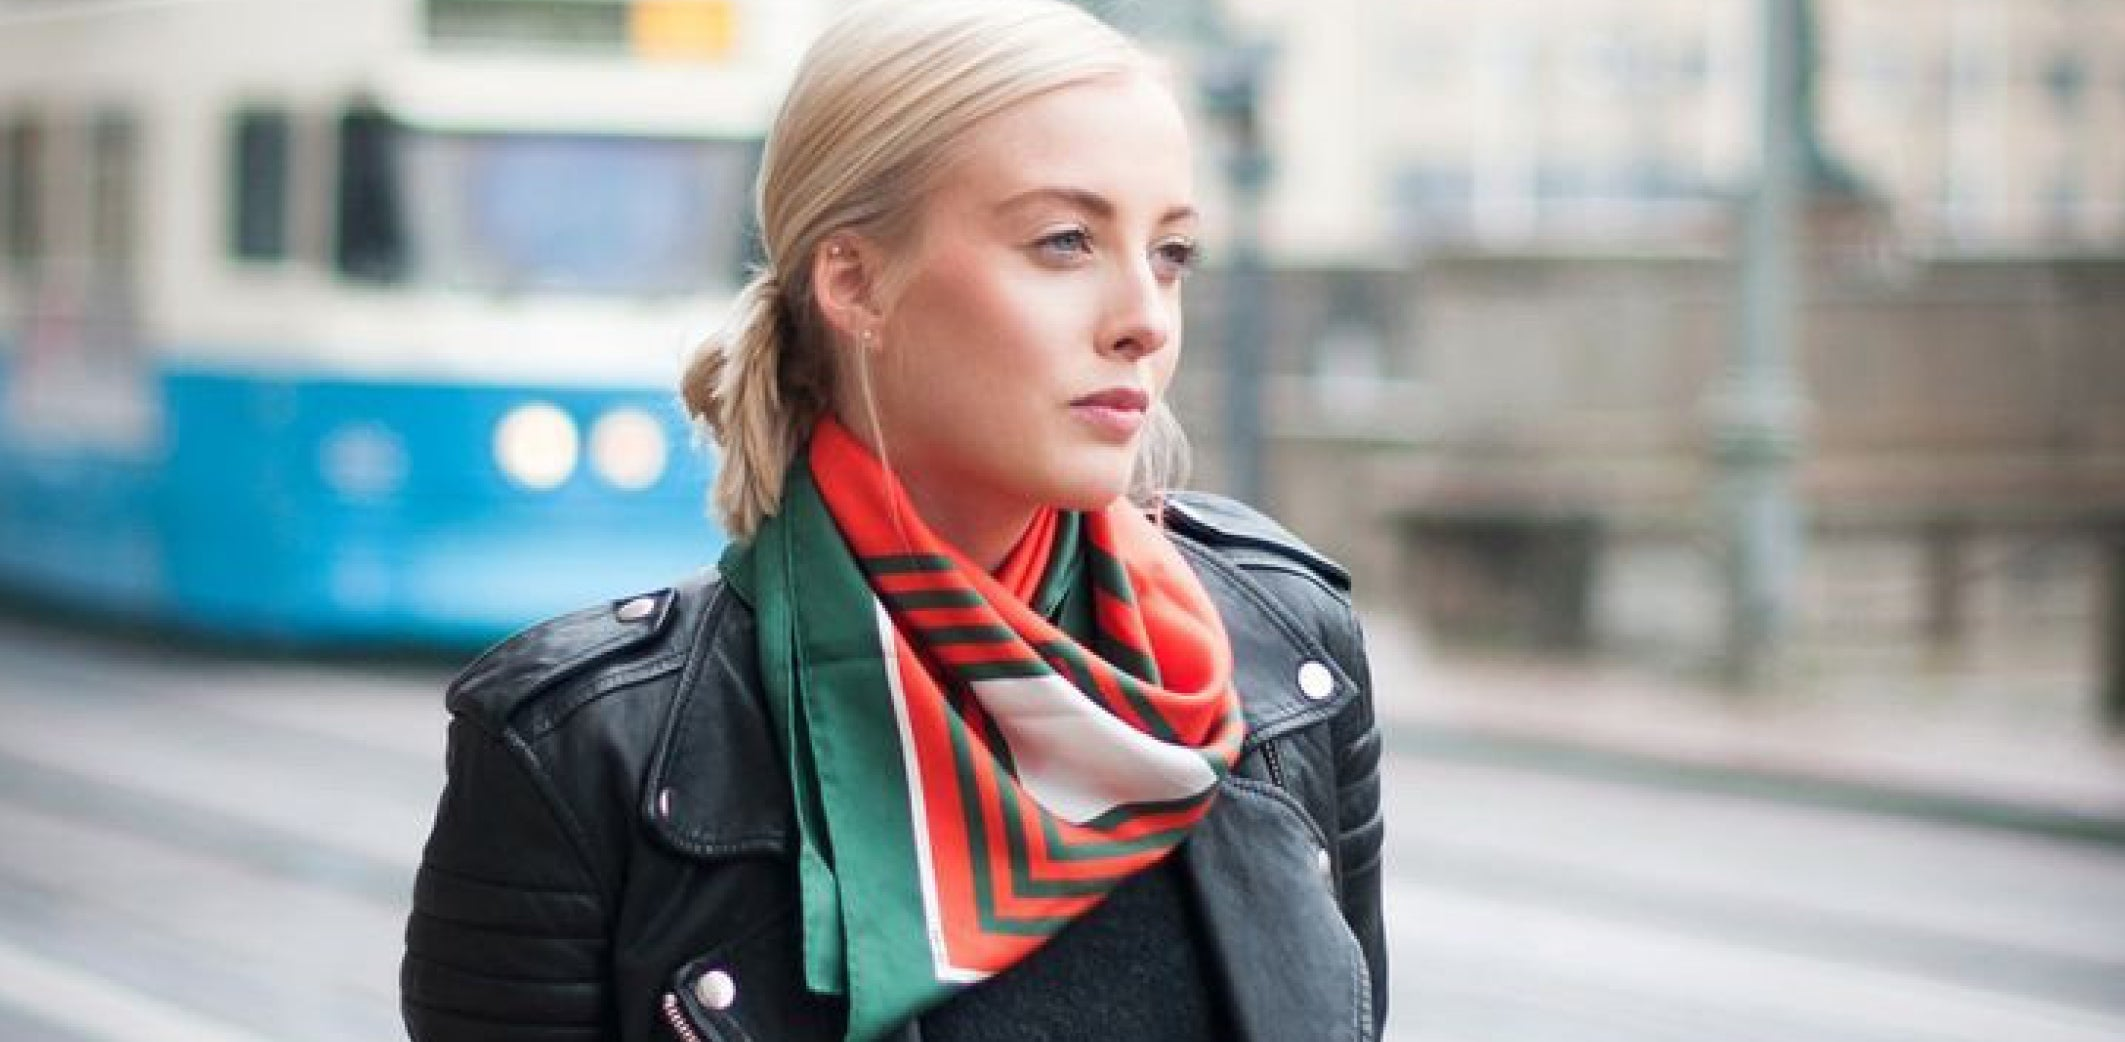 How to wear a scarf - Scarf Styling Ideas